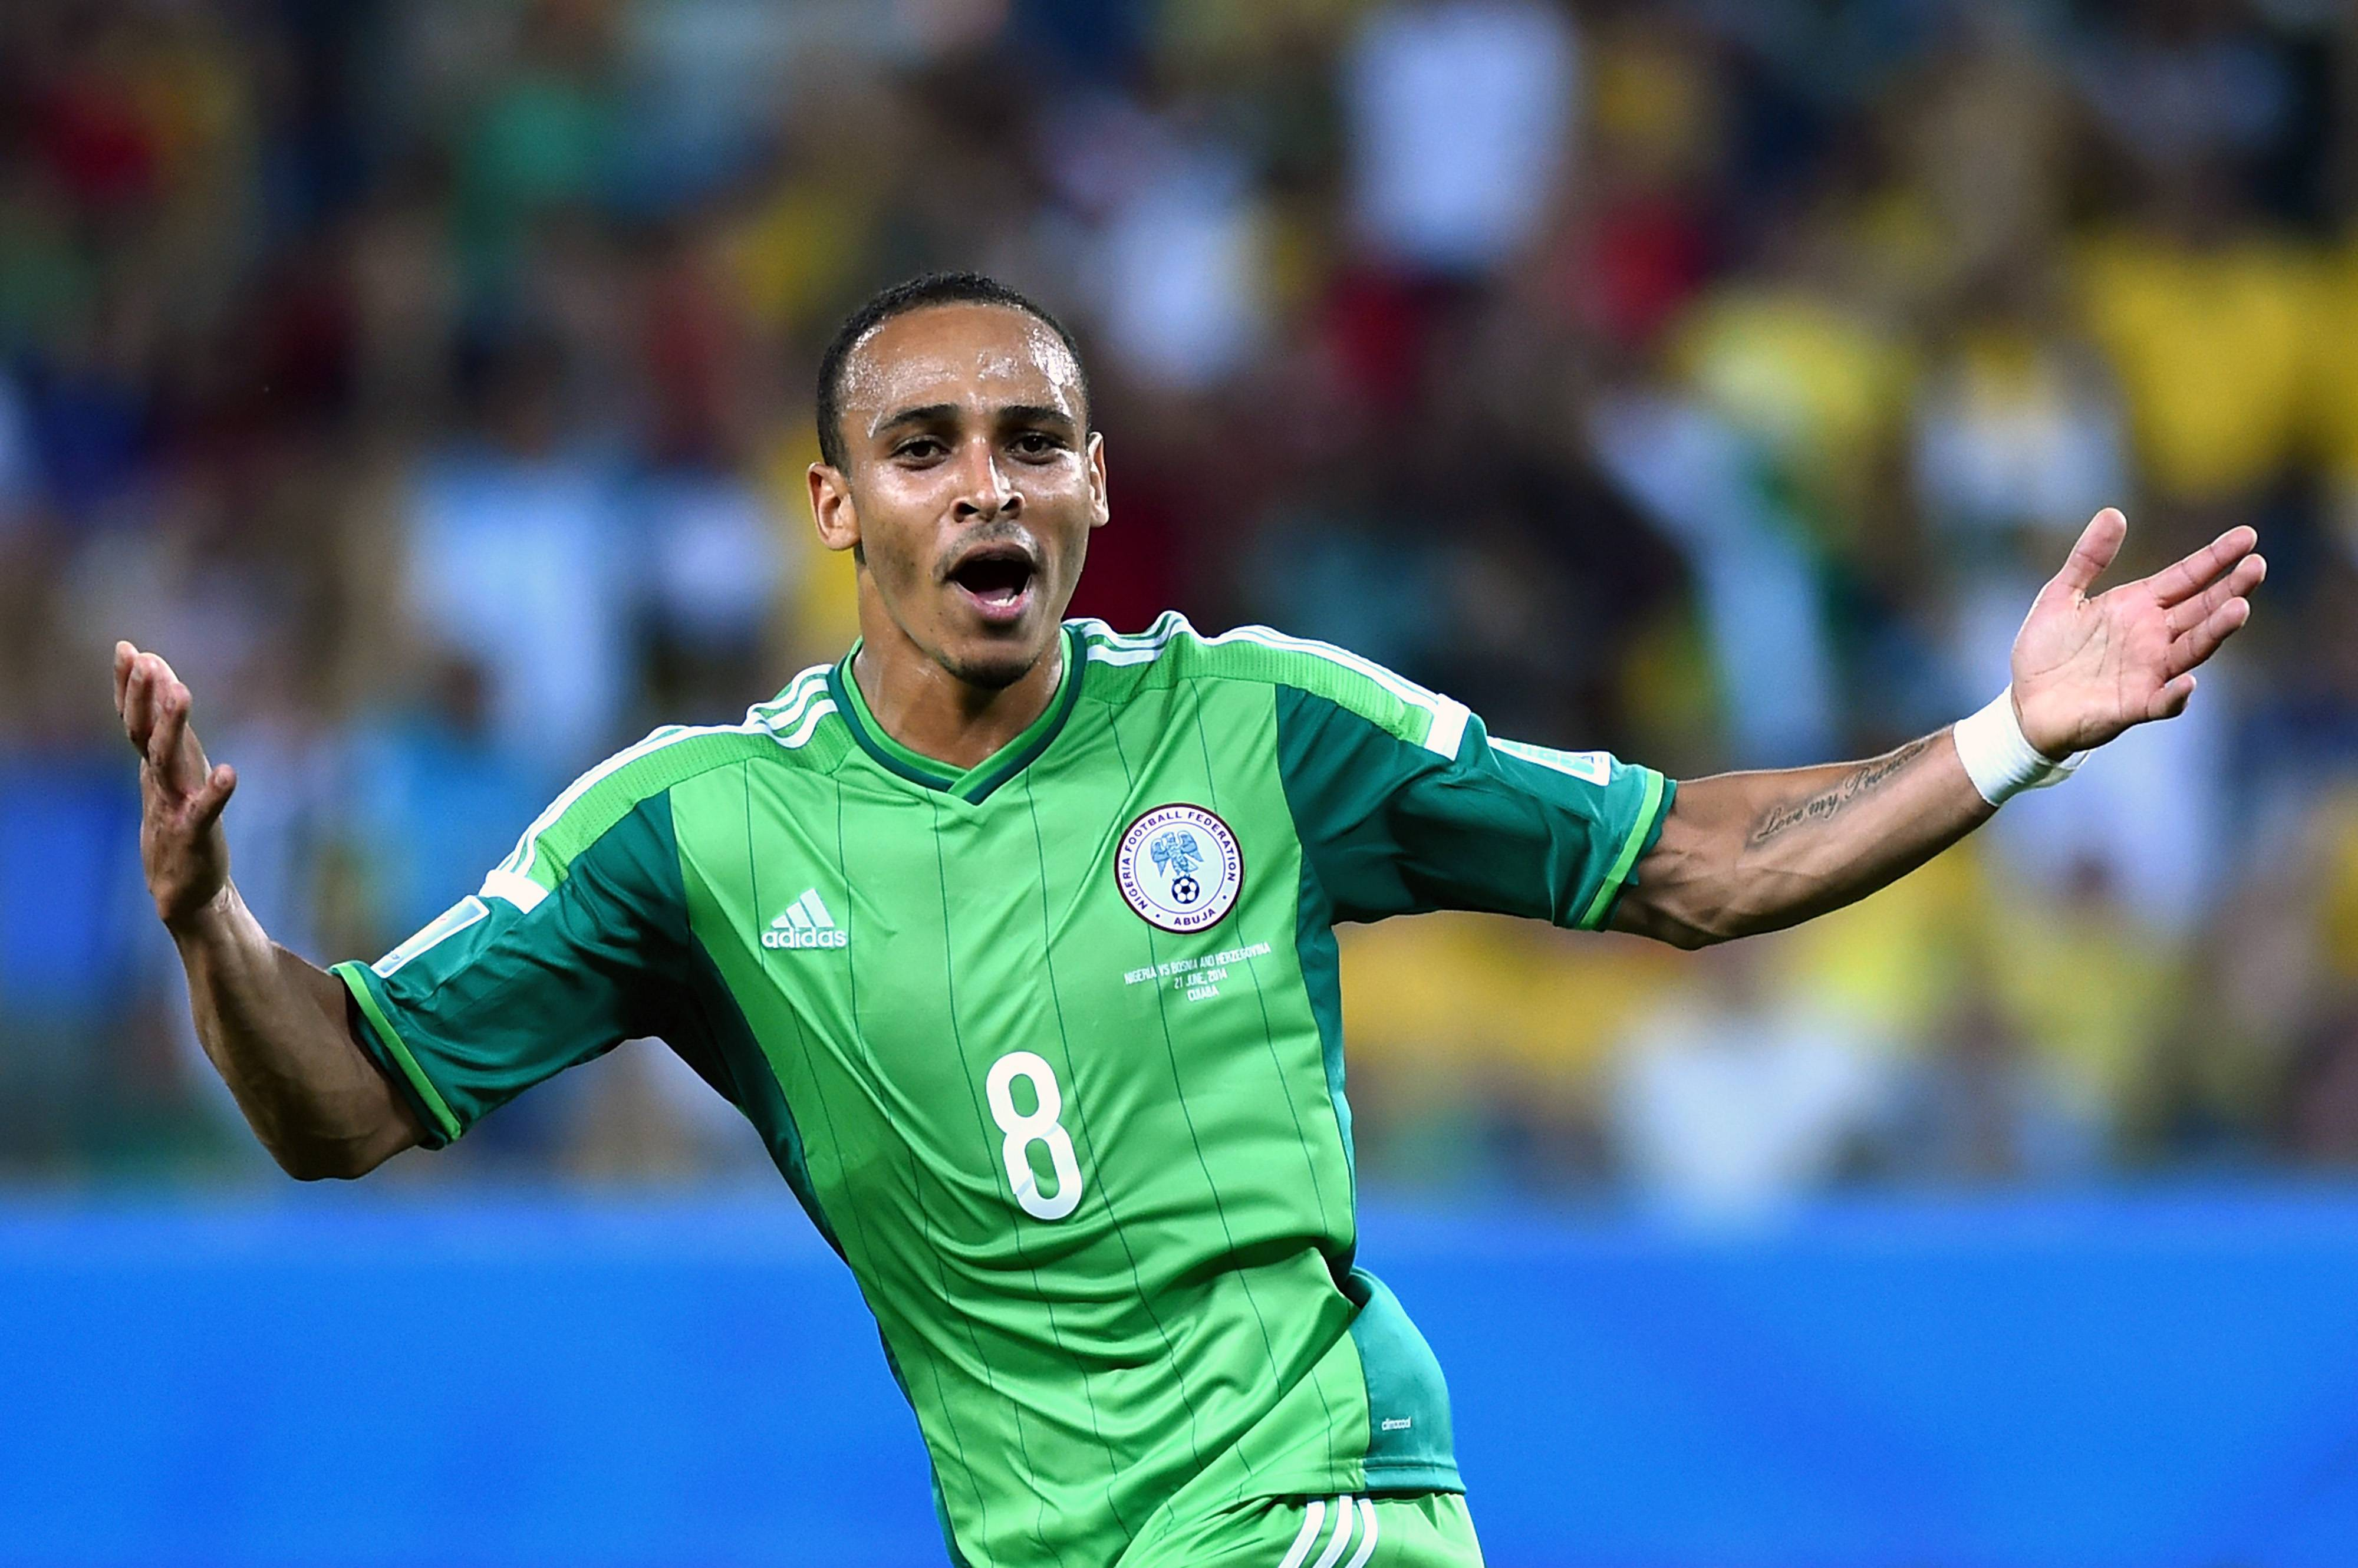 Madura United to test Peter Odemwingie in Magelang Cup